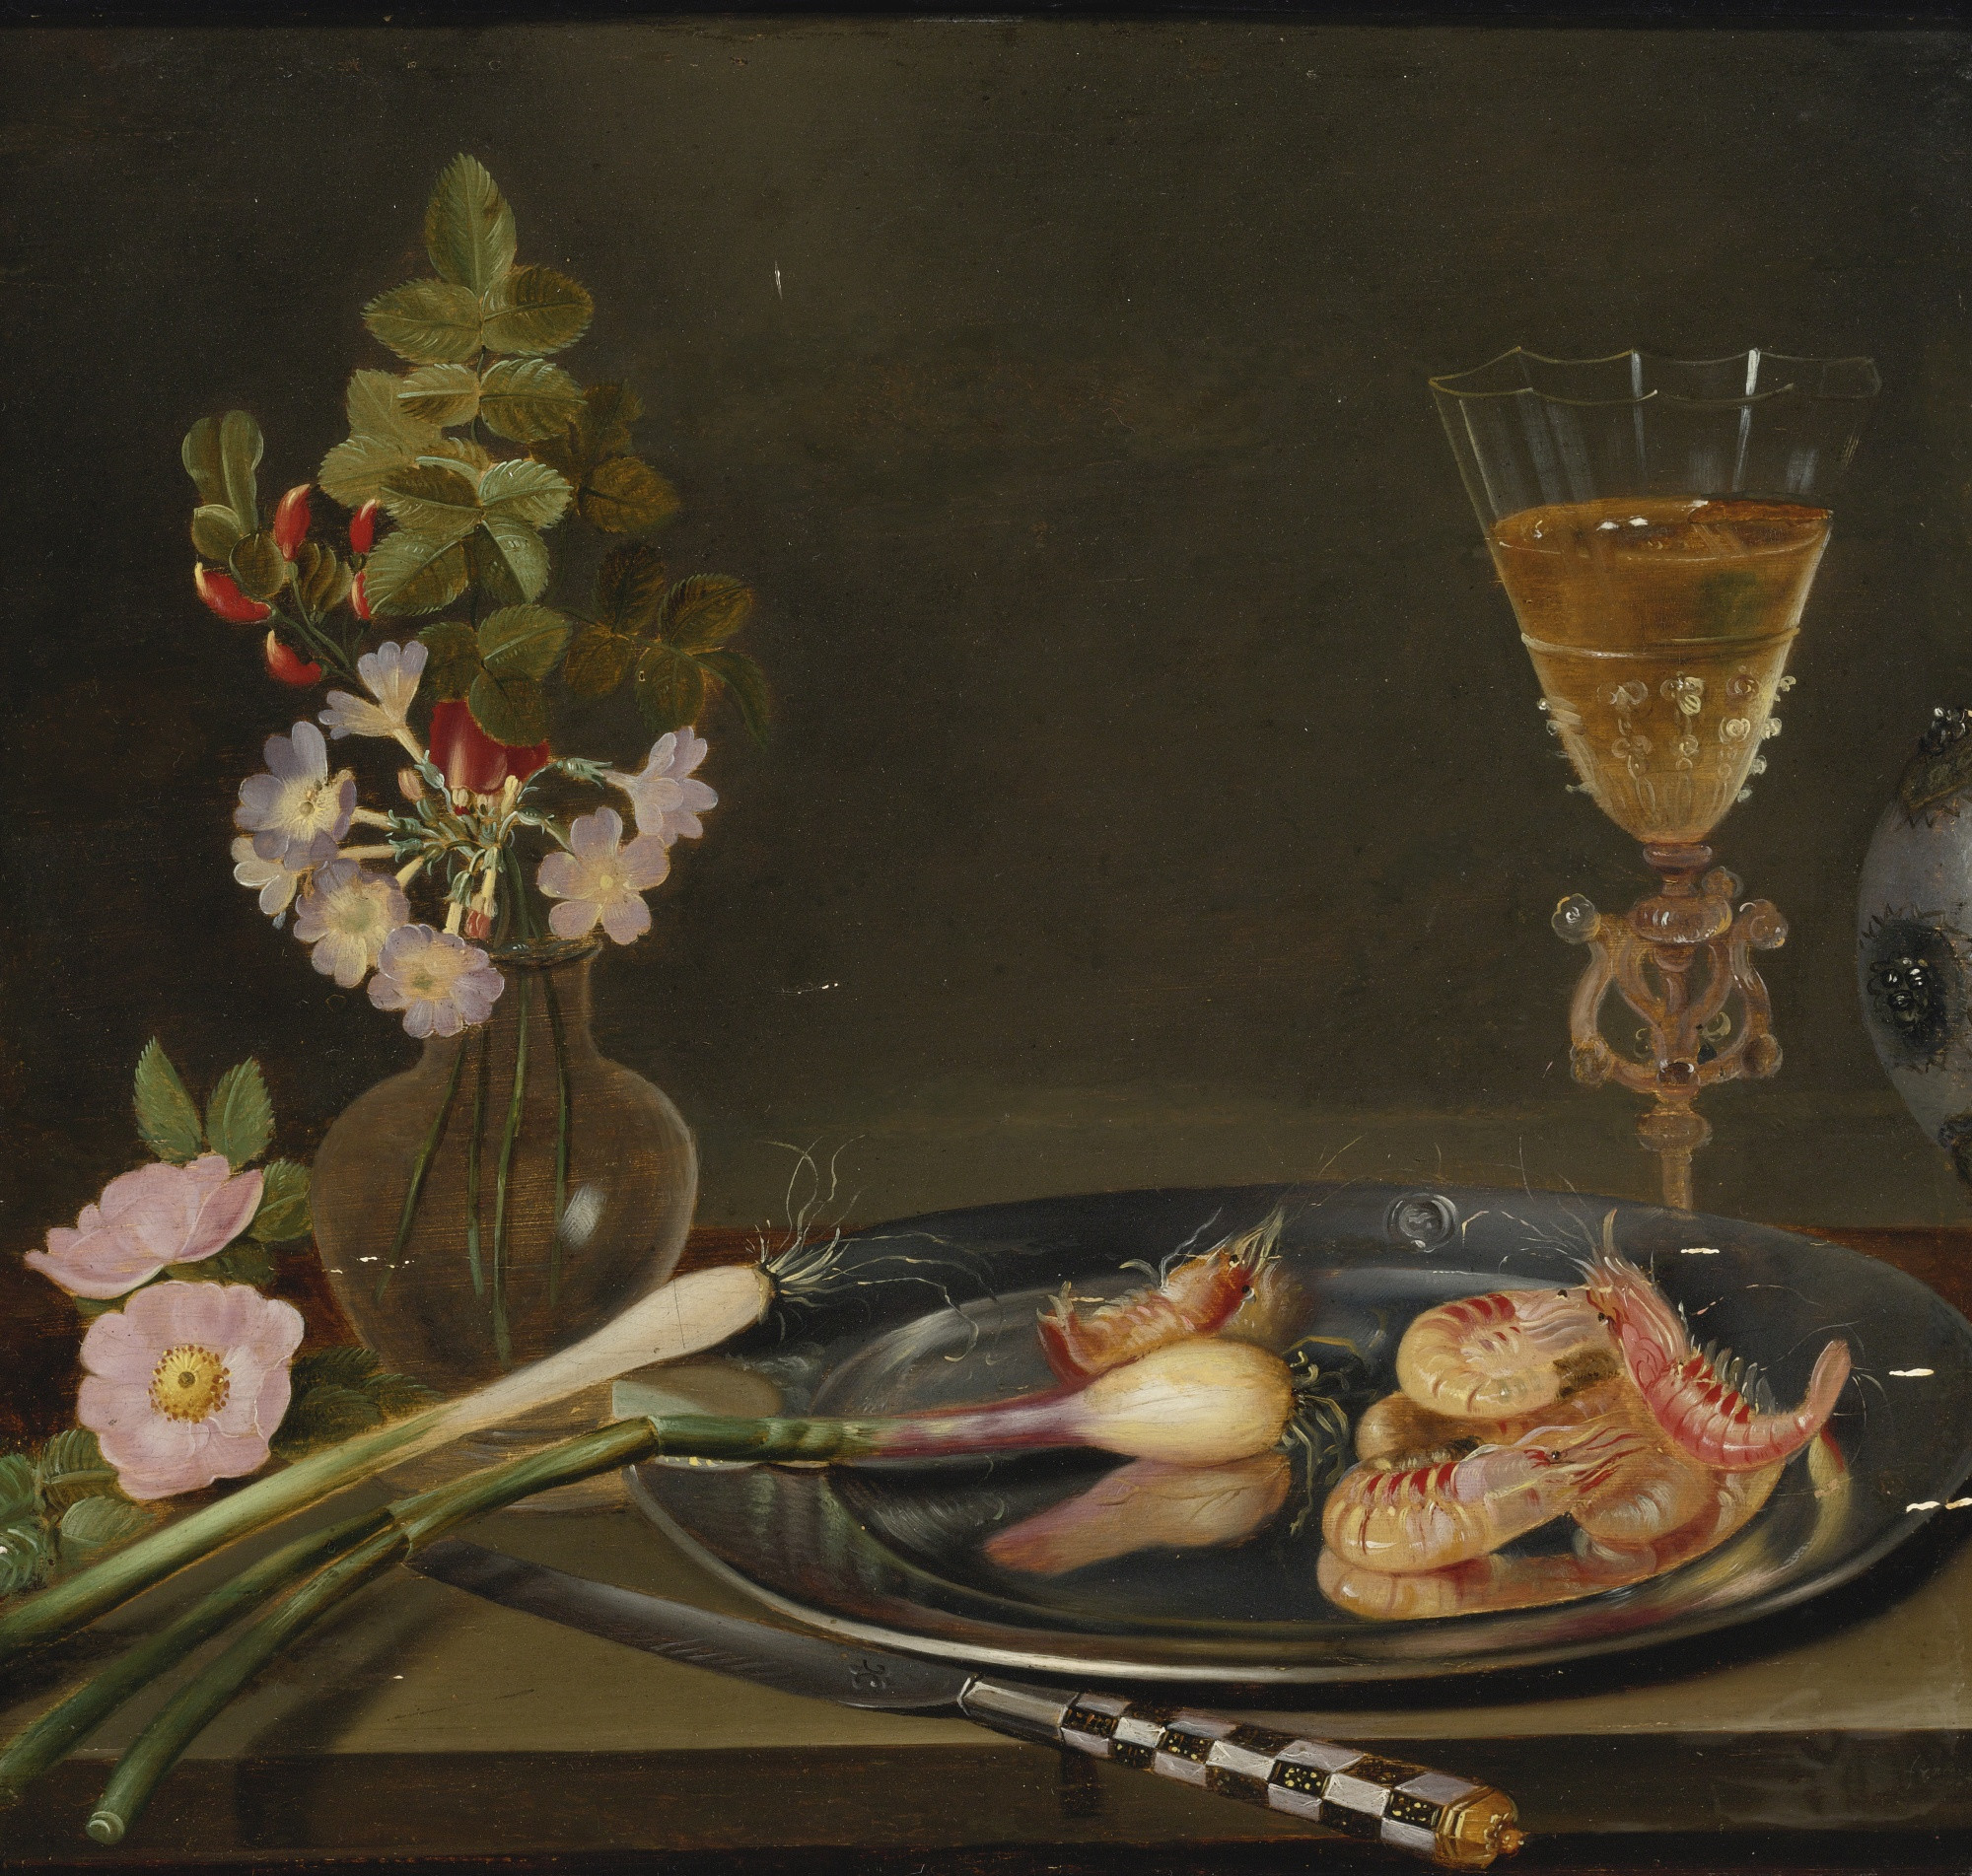 4ft glass vase of frans ykens wikipedia for still life with shrimp ramps flowers and a glass vase